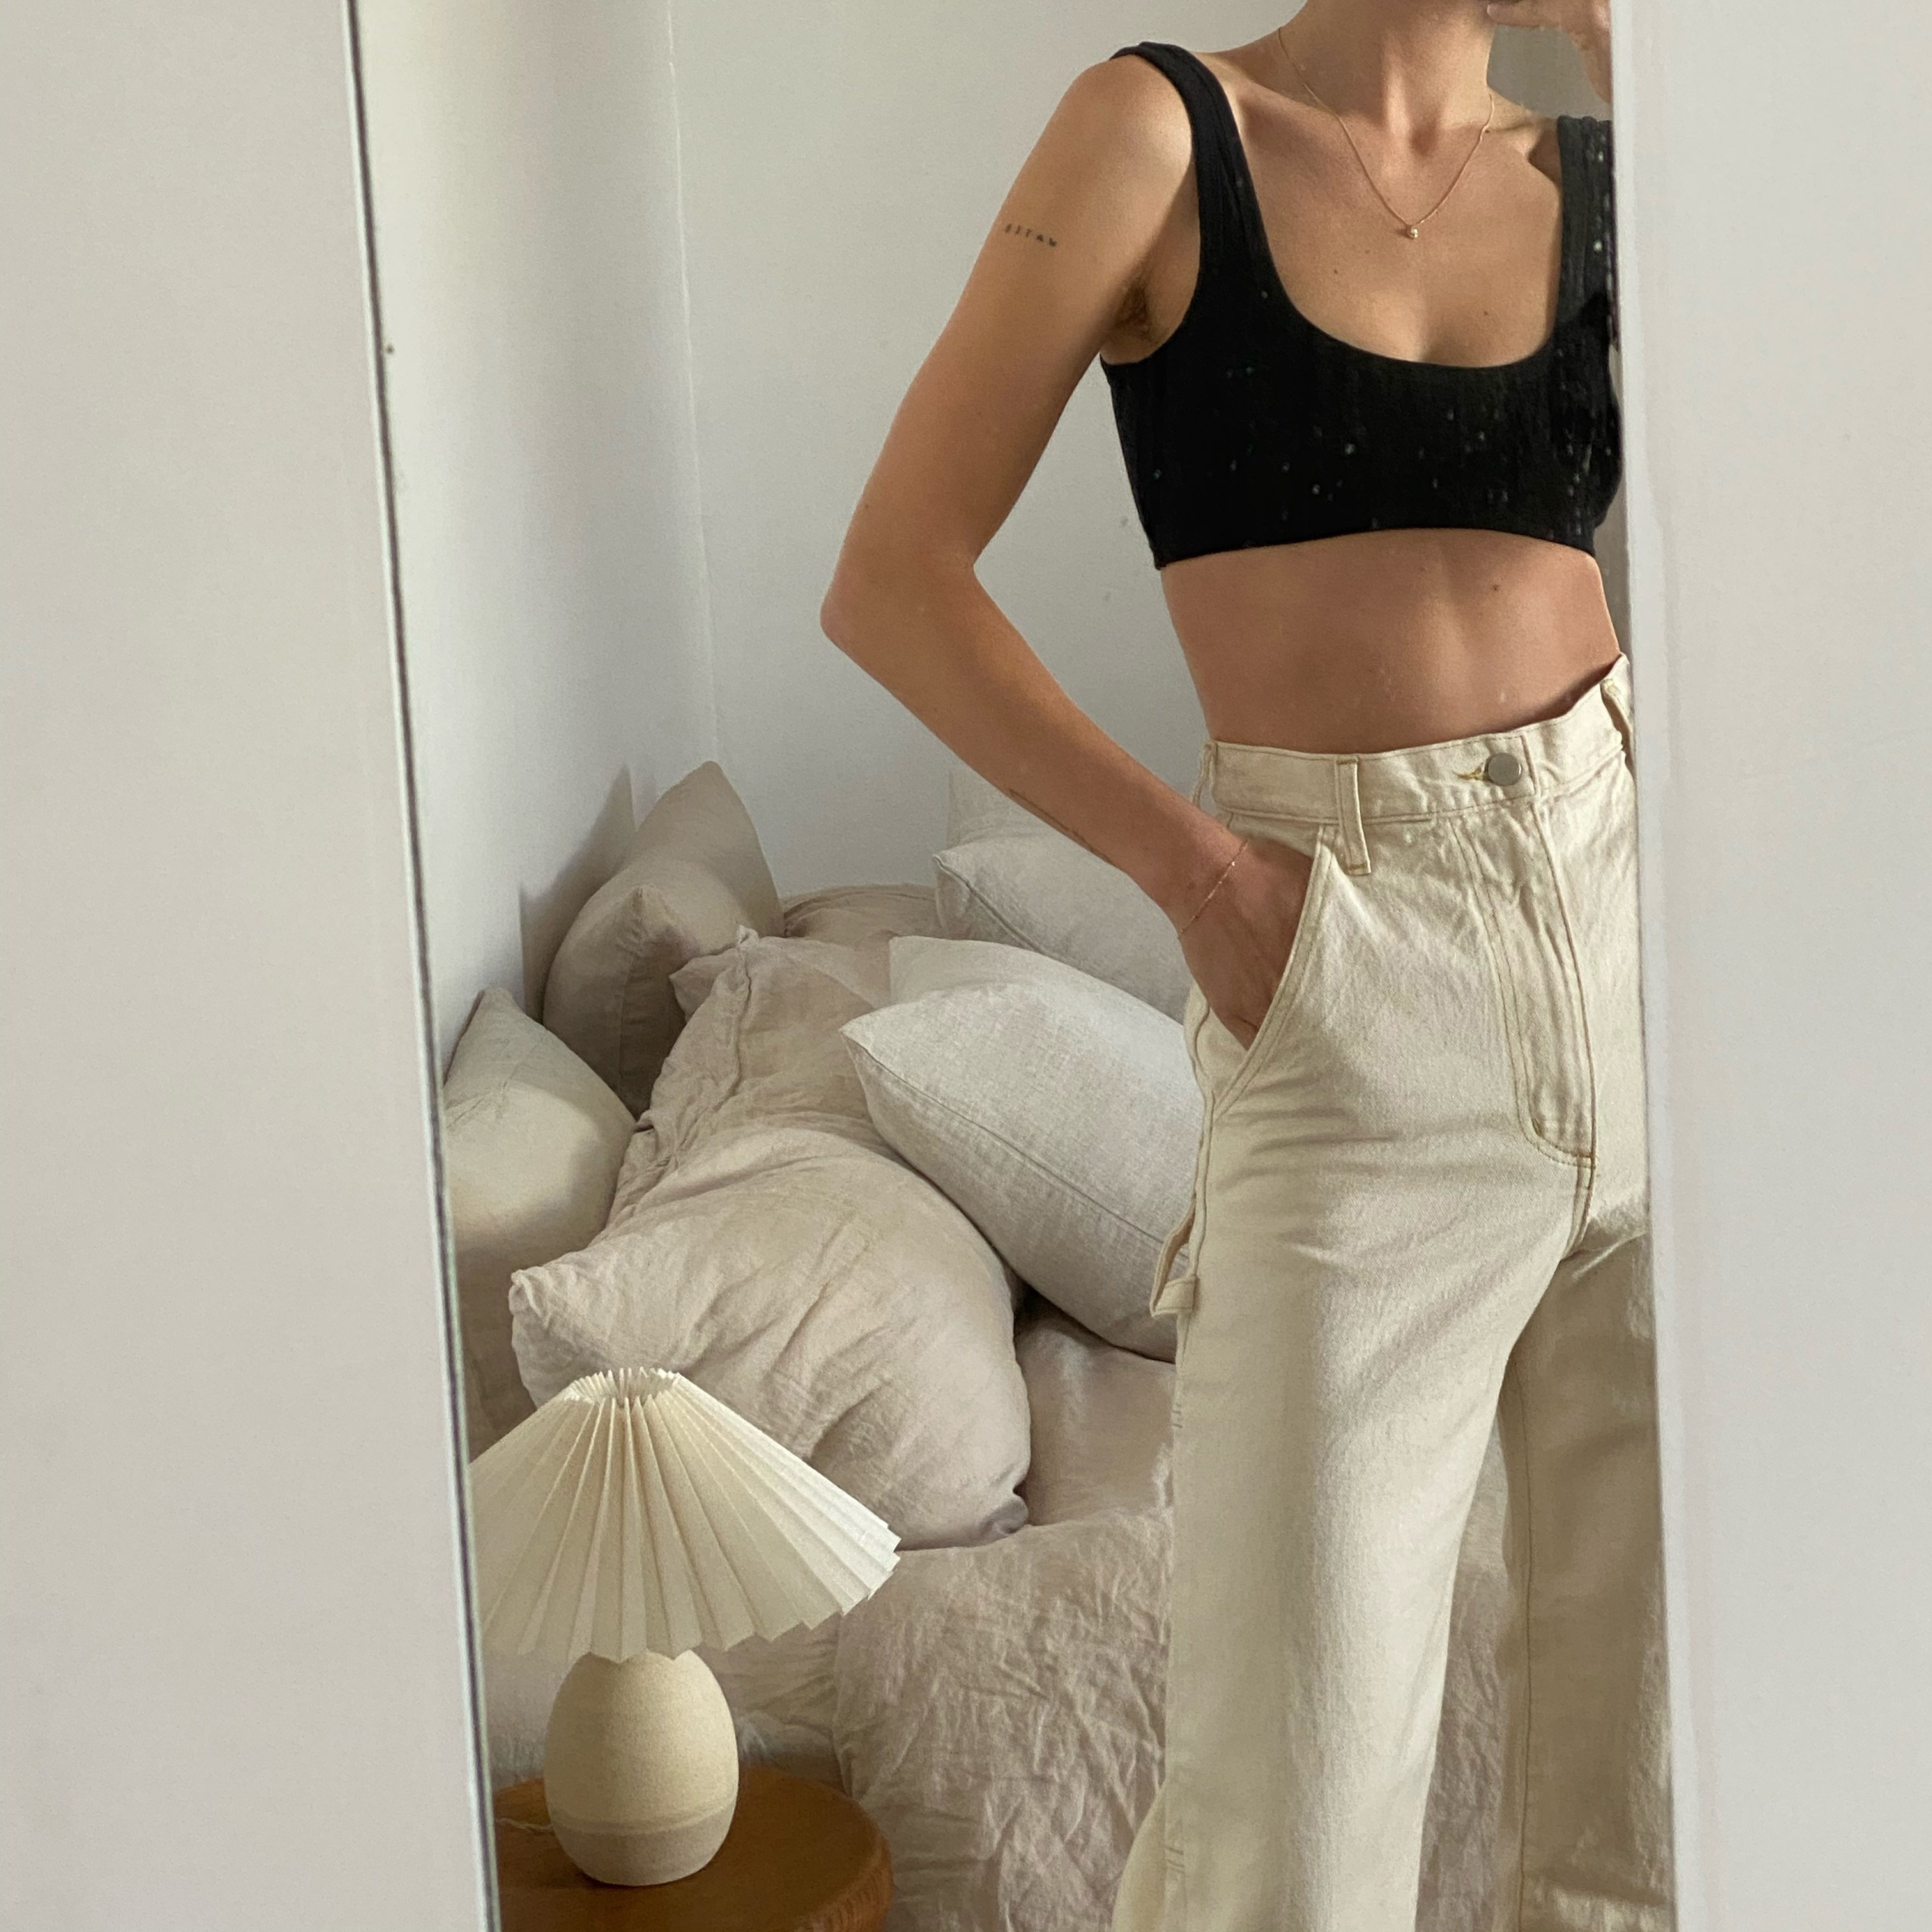 https://shainamote.com/products/carpenter-pant-in-natural